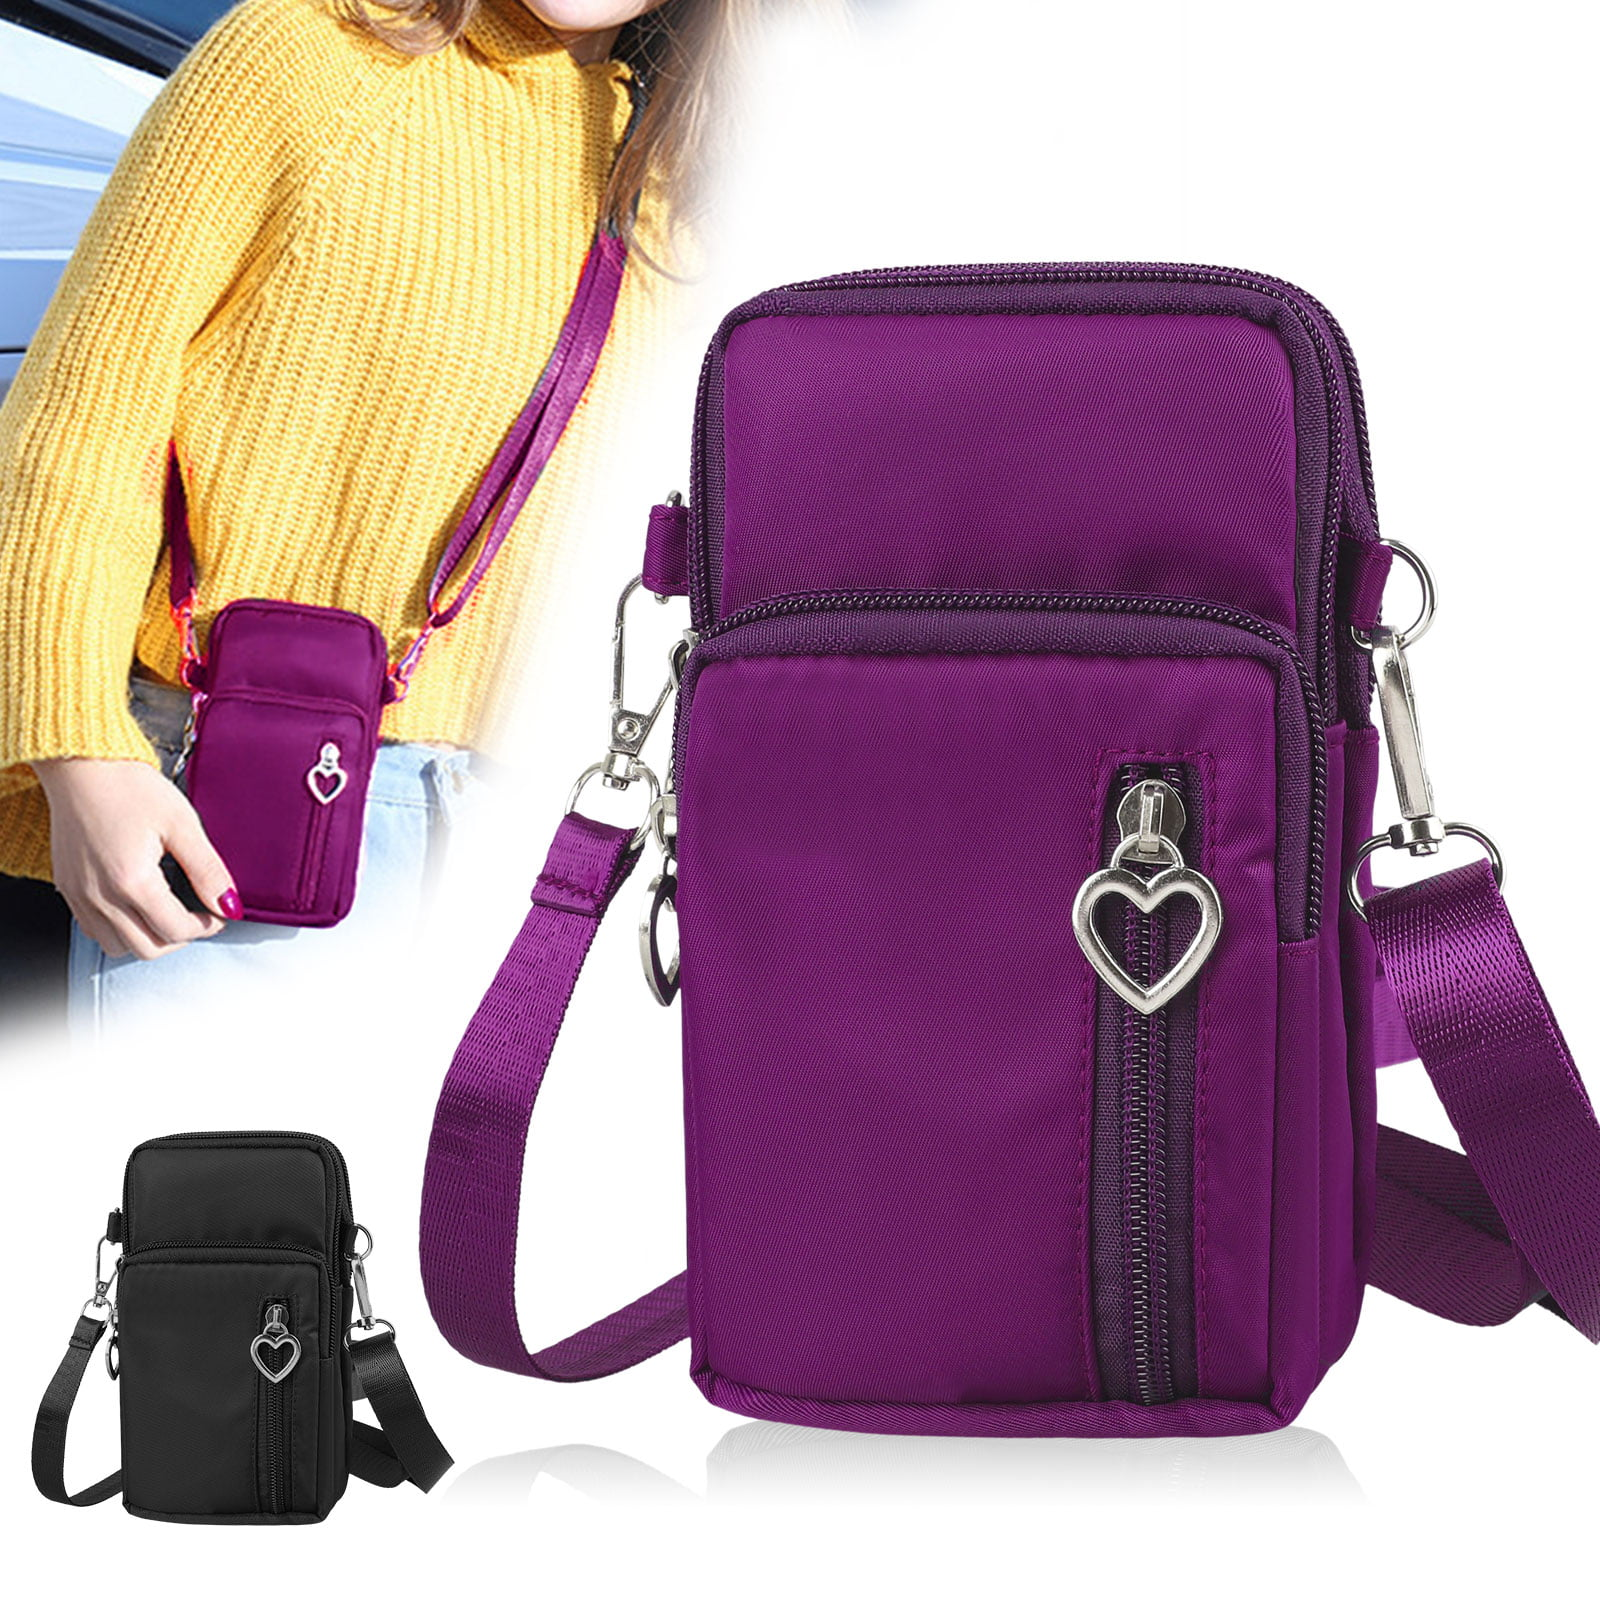 Small Women Nylon Crossbody Cell Phone Purse Trave Shoulder Bags w 4 Zip Pockets